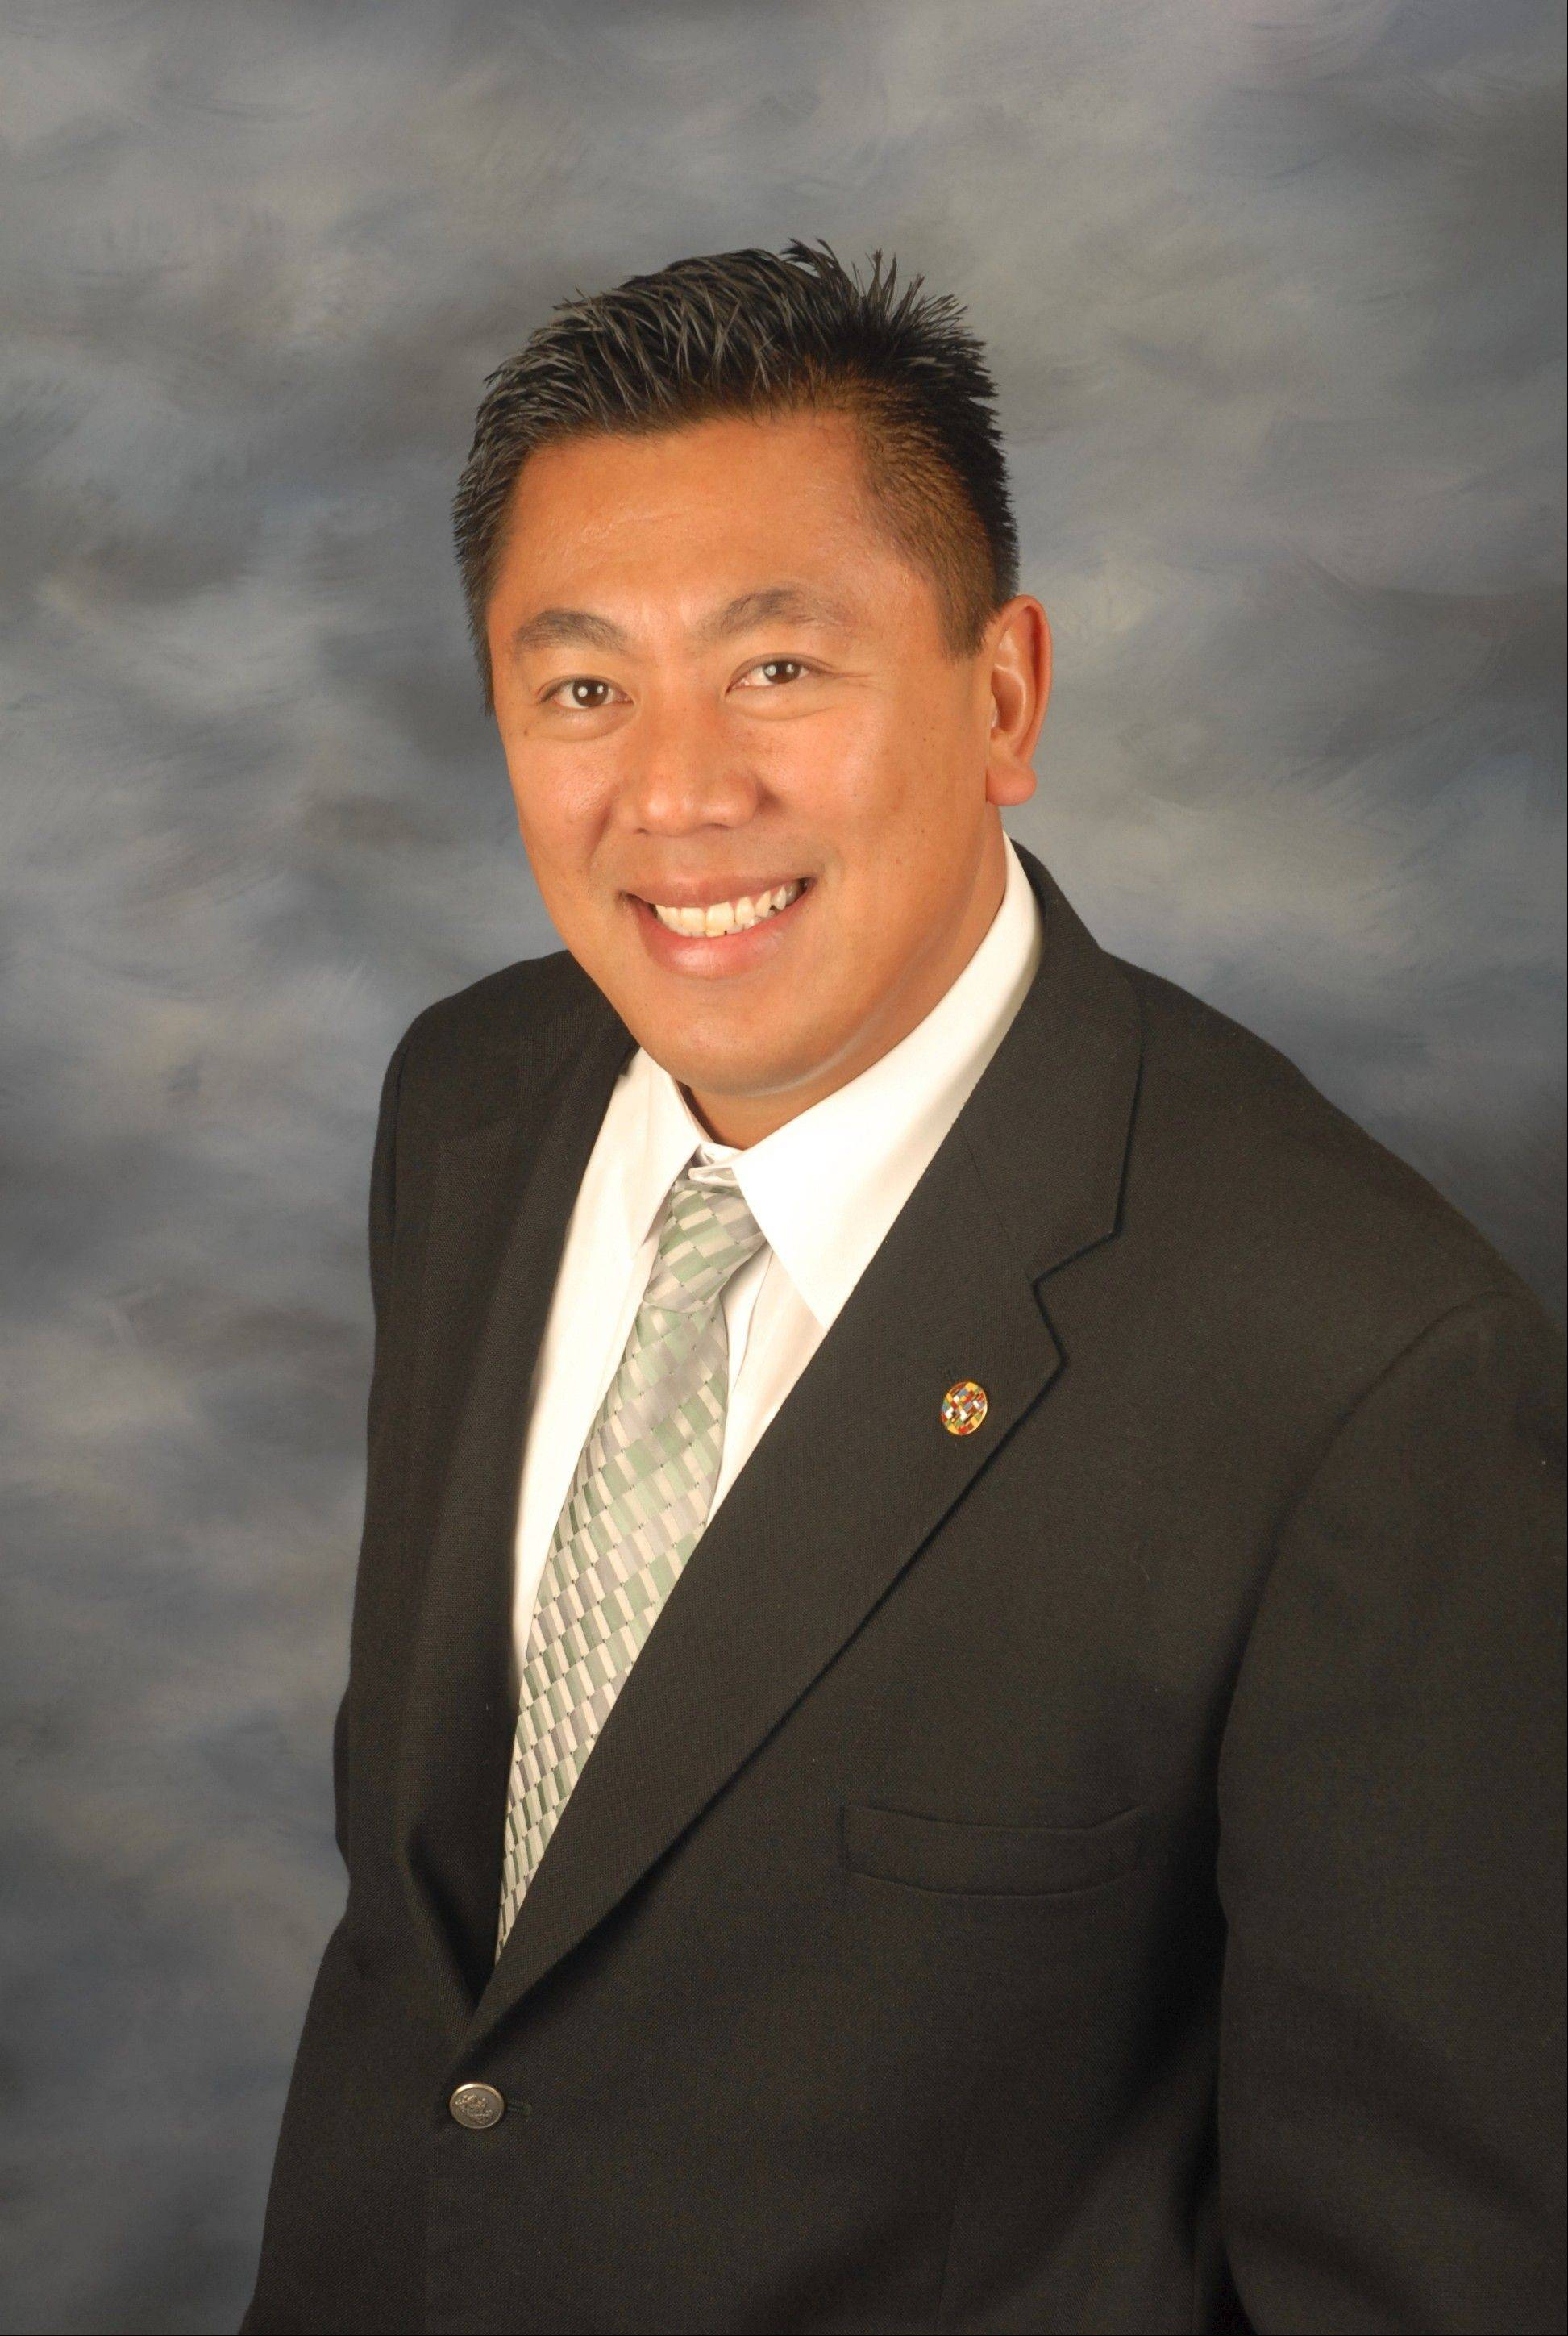 James Ongtengco